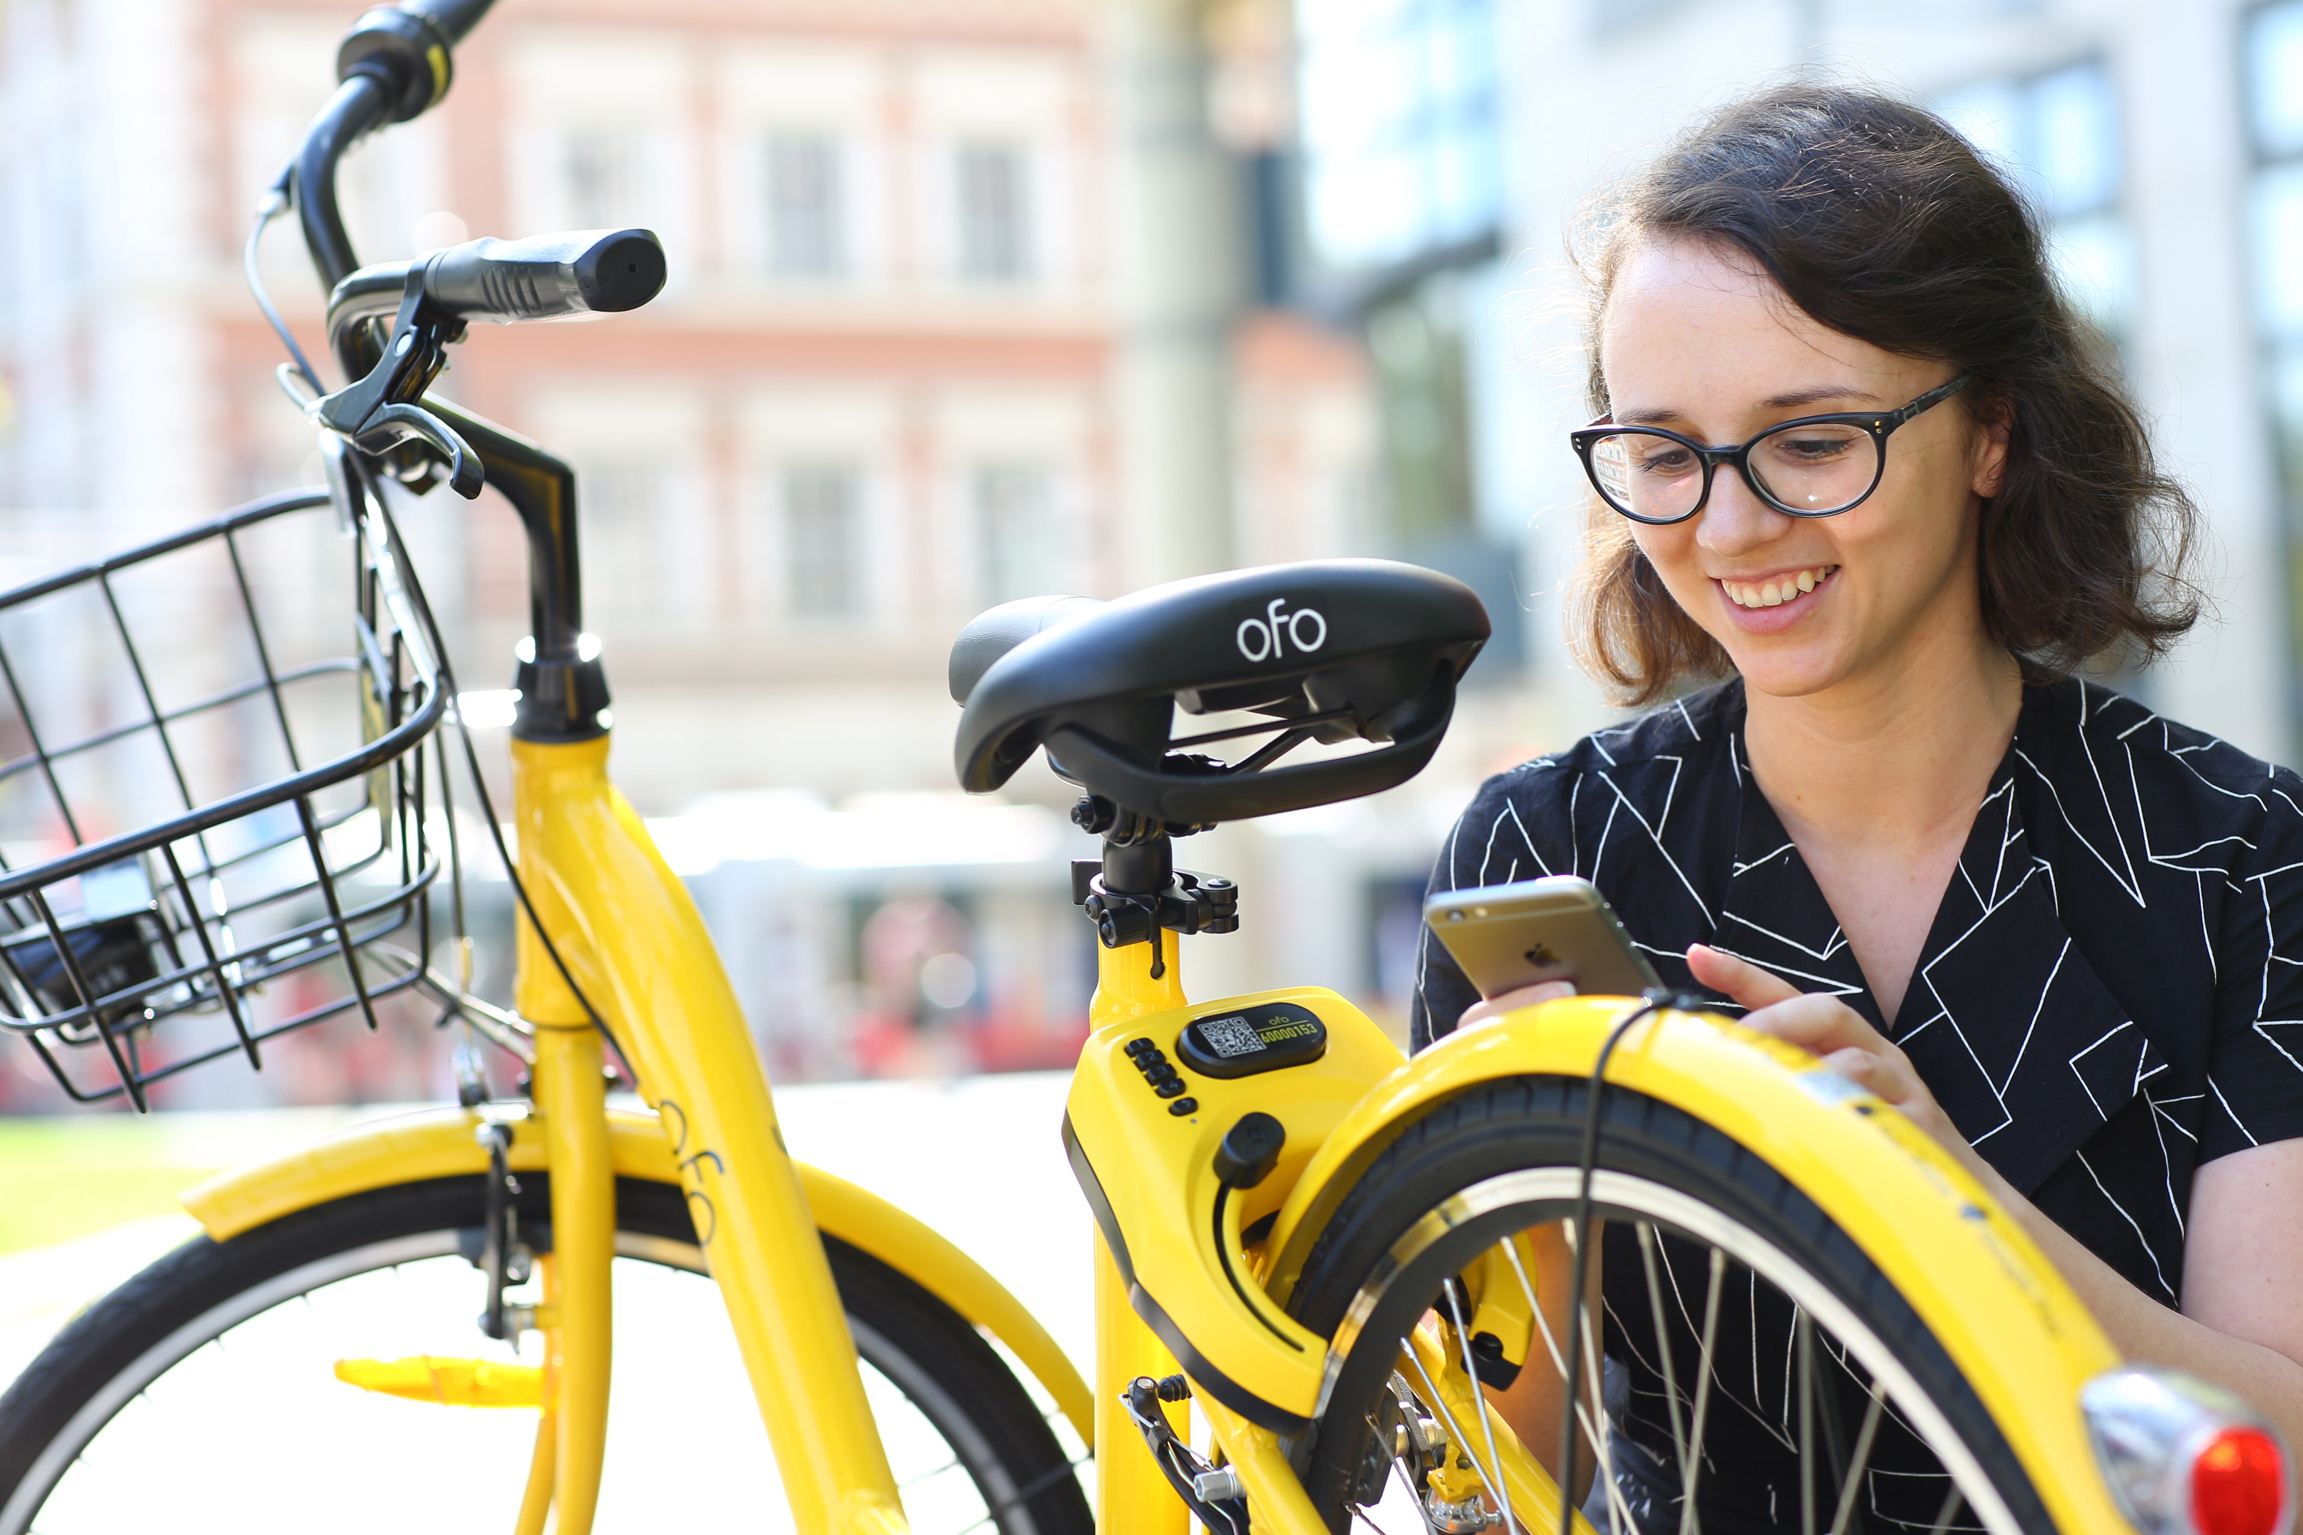 Bike-sharing systems: AIT optimises location planning